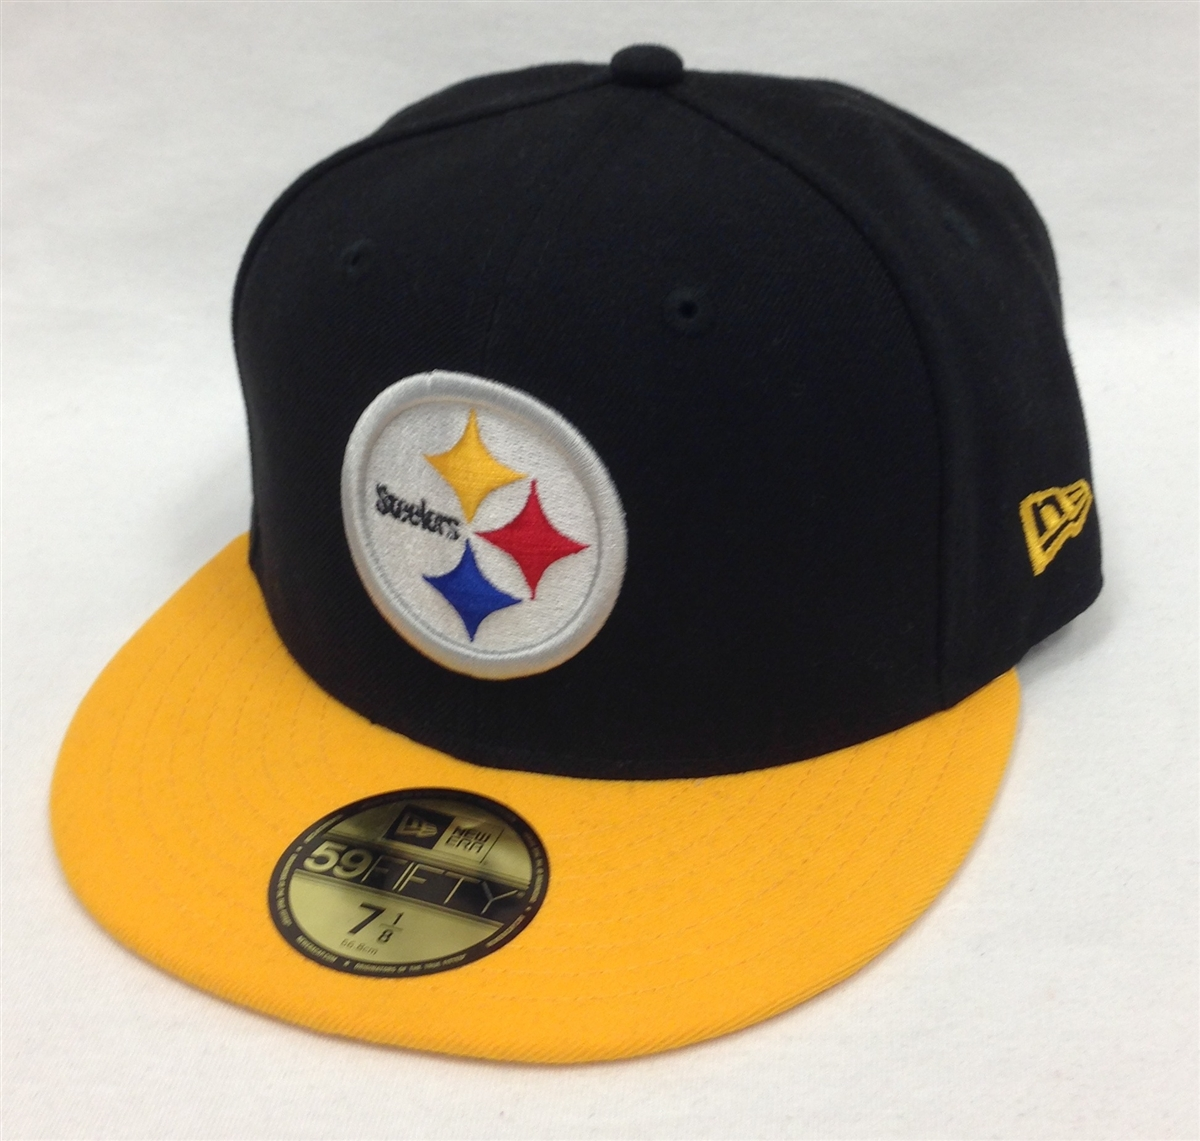 New Era 59Fifty Black Team Pittsburgh Steelers Black   Yellow Fitted ... 2c427862f46e